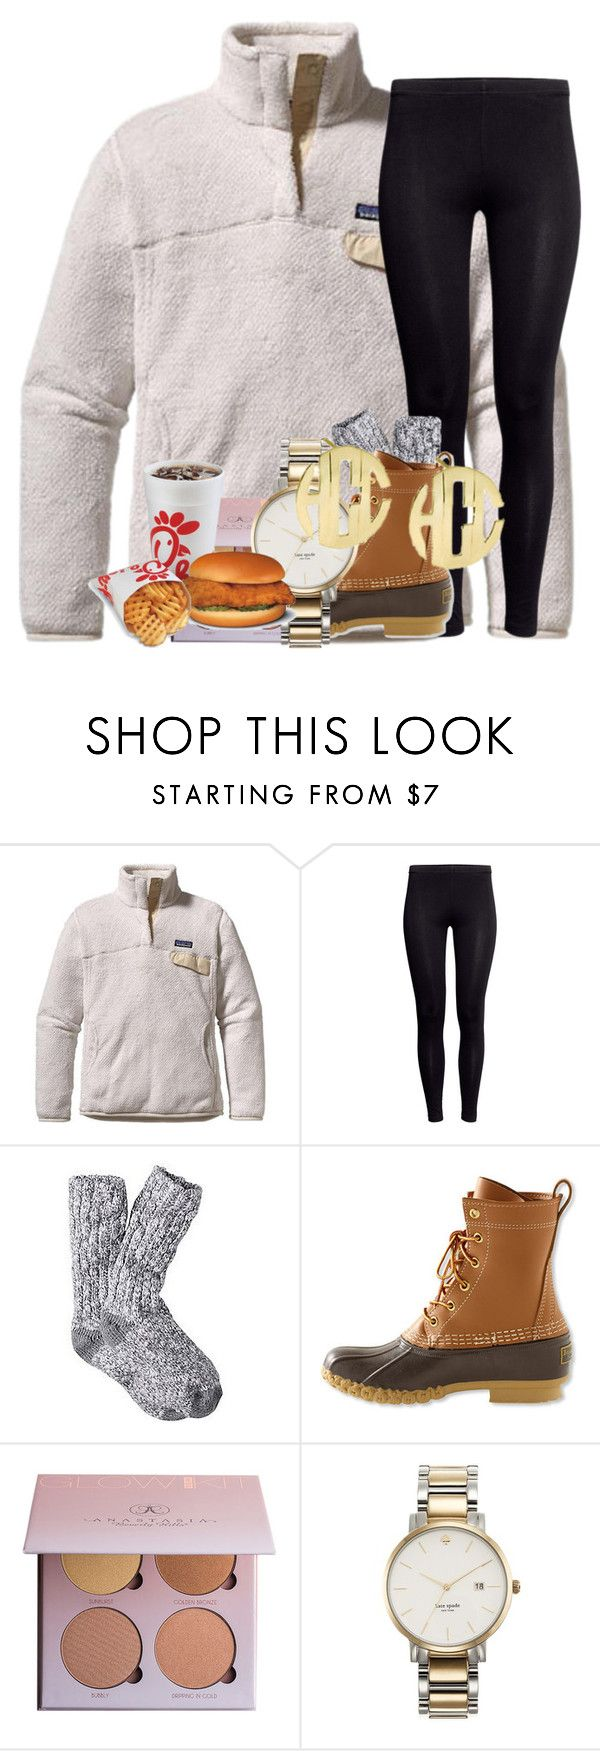 """""""I had chick fil a for valentines day"""" by starbucksmoney ❤ liked on Polyvore featuring Patagonia, H&M, L.L.Bean and Kate Spade"""